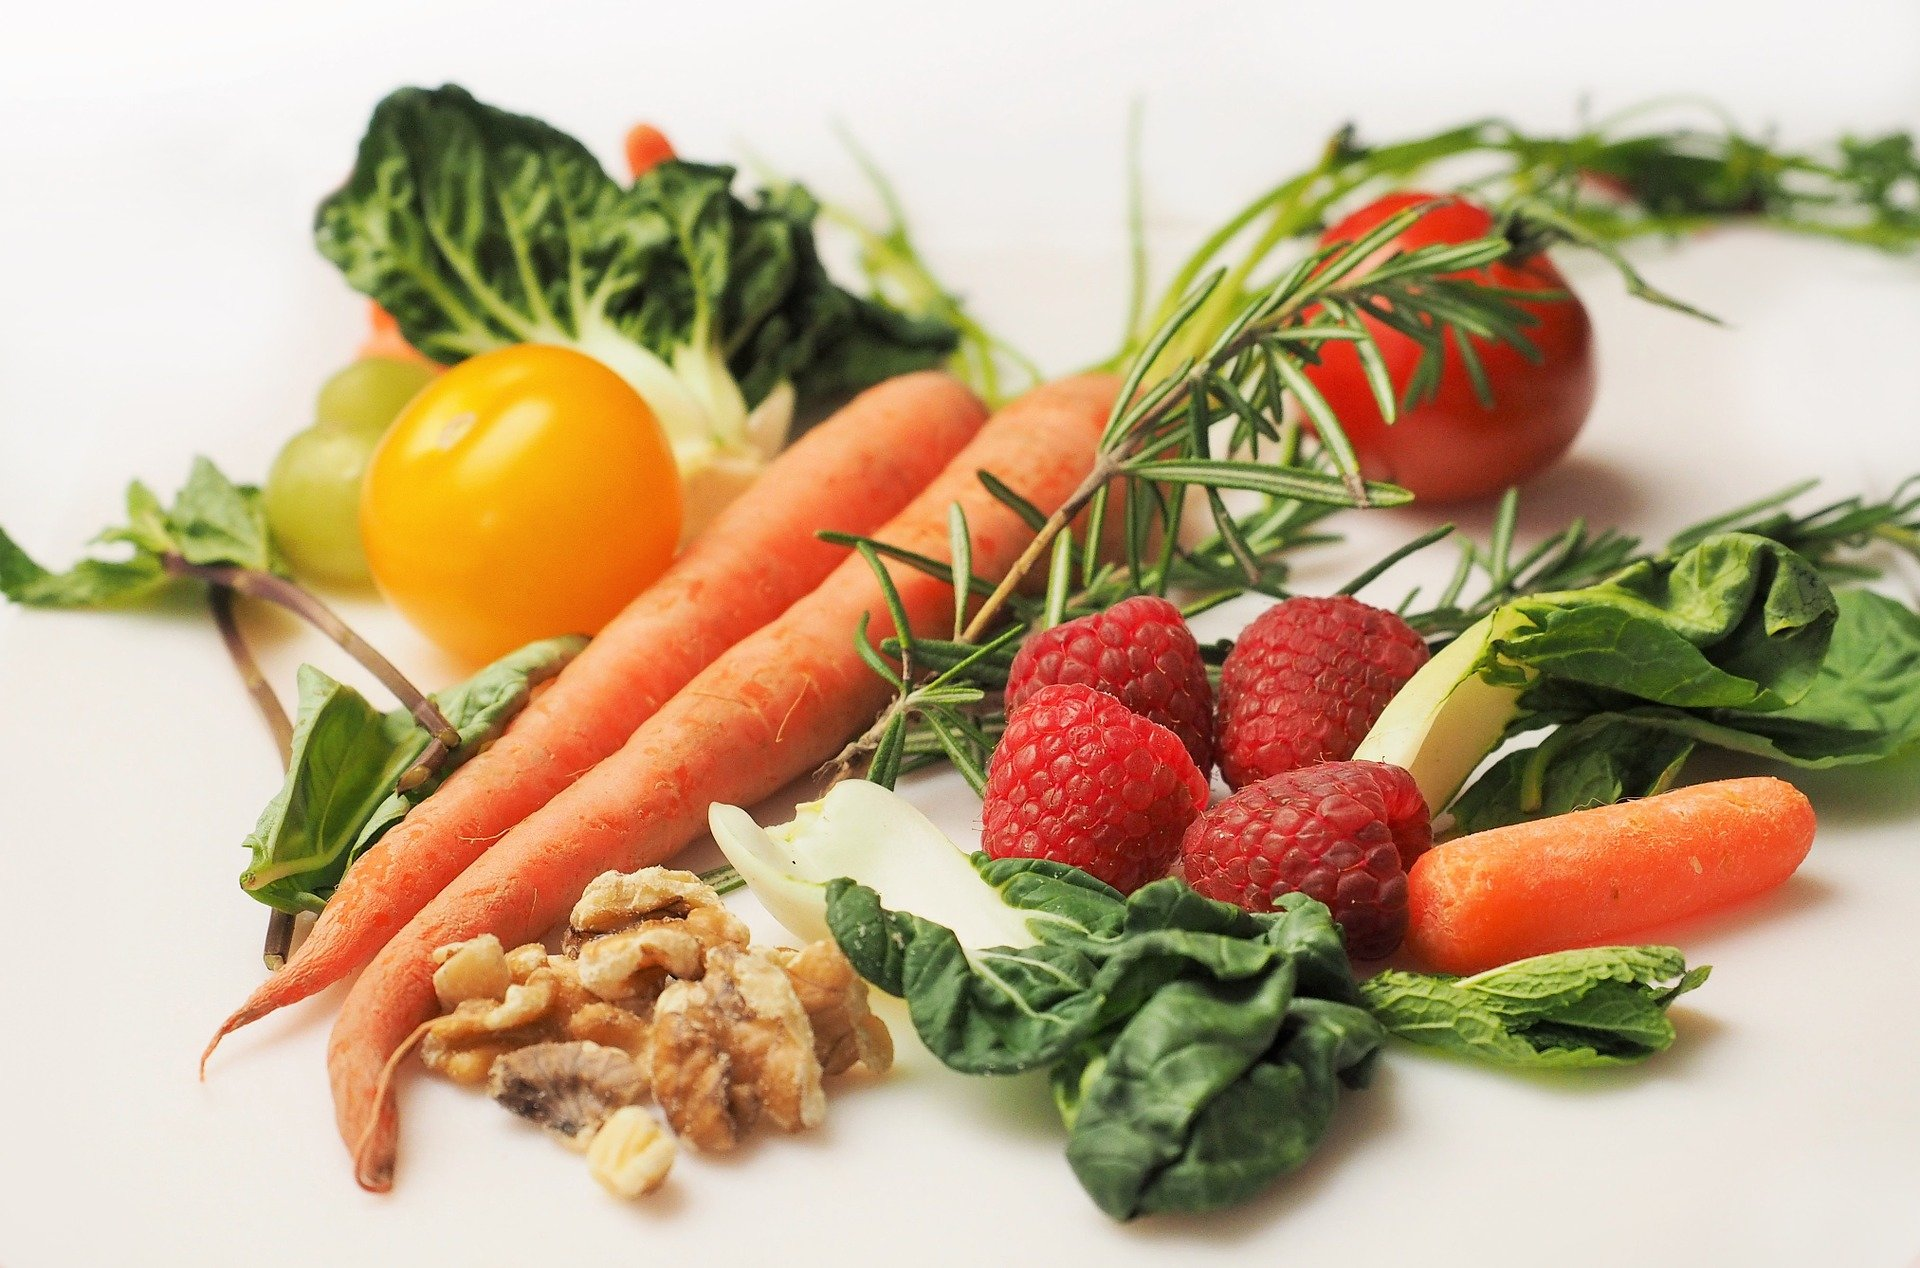 can healthy diets support rising population